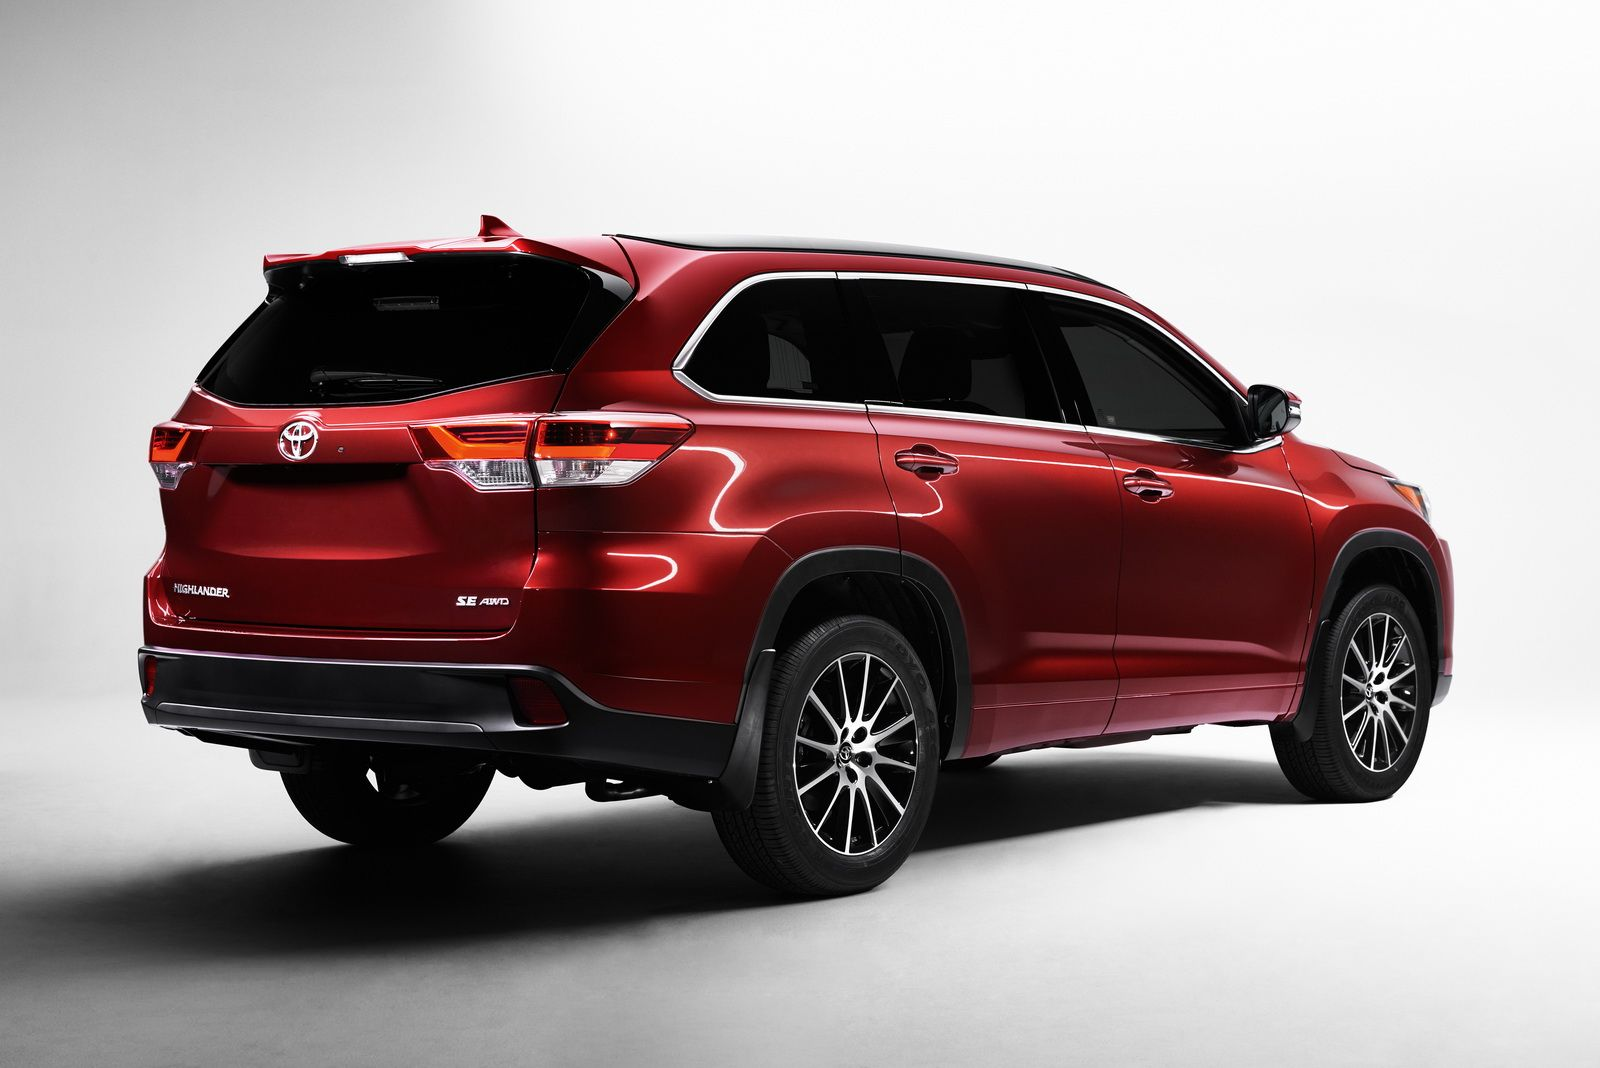 Toyota highlander view all toyota highlander at cardomain carss pinterest toyota cars and motorbikes